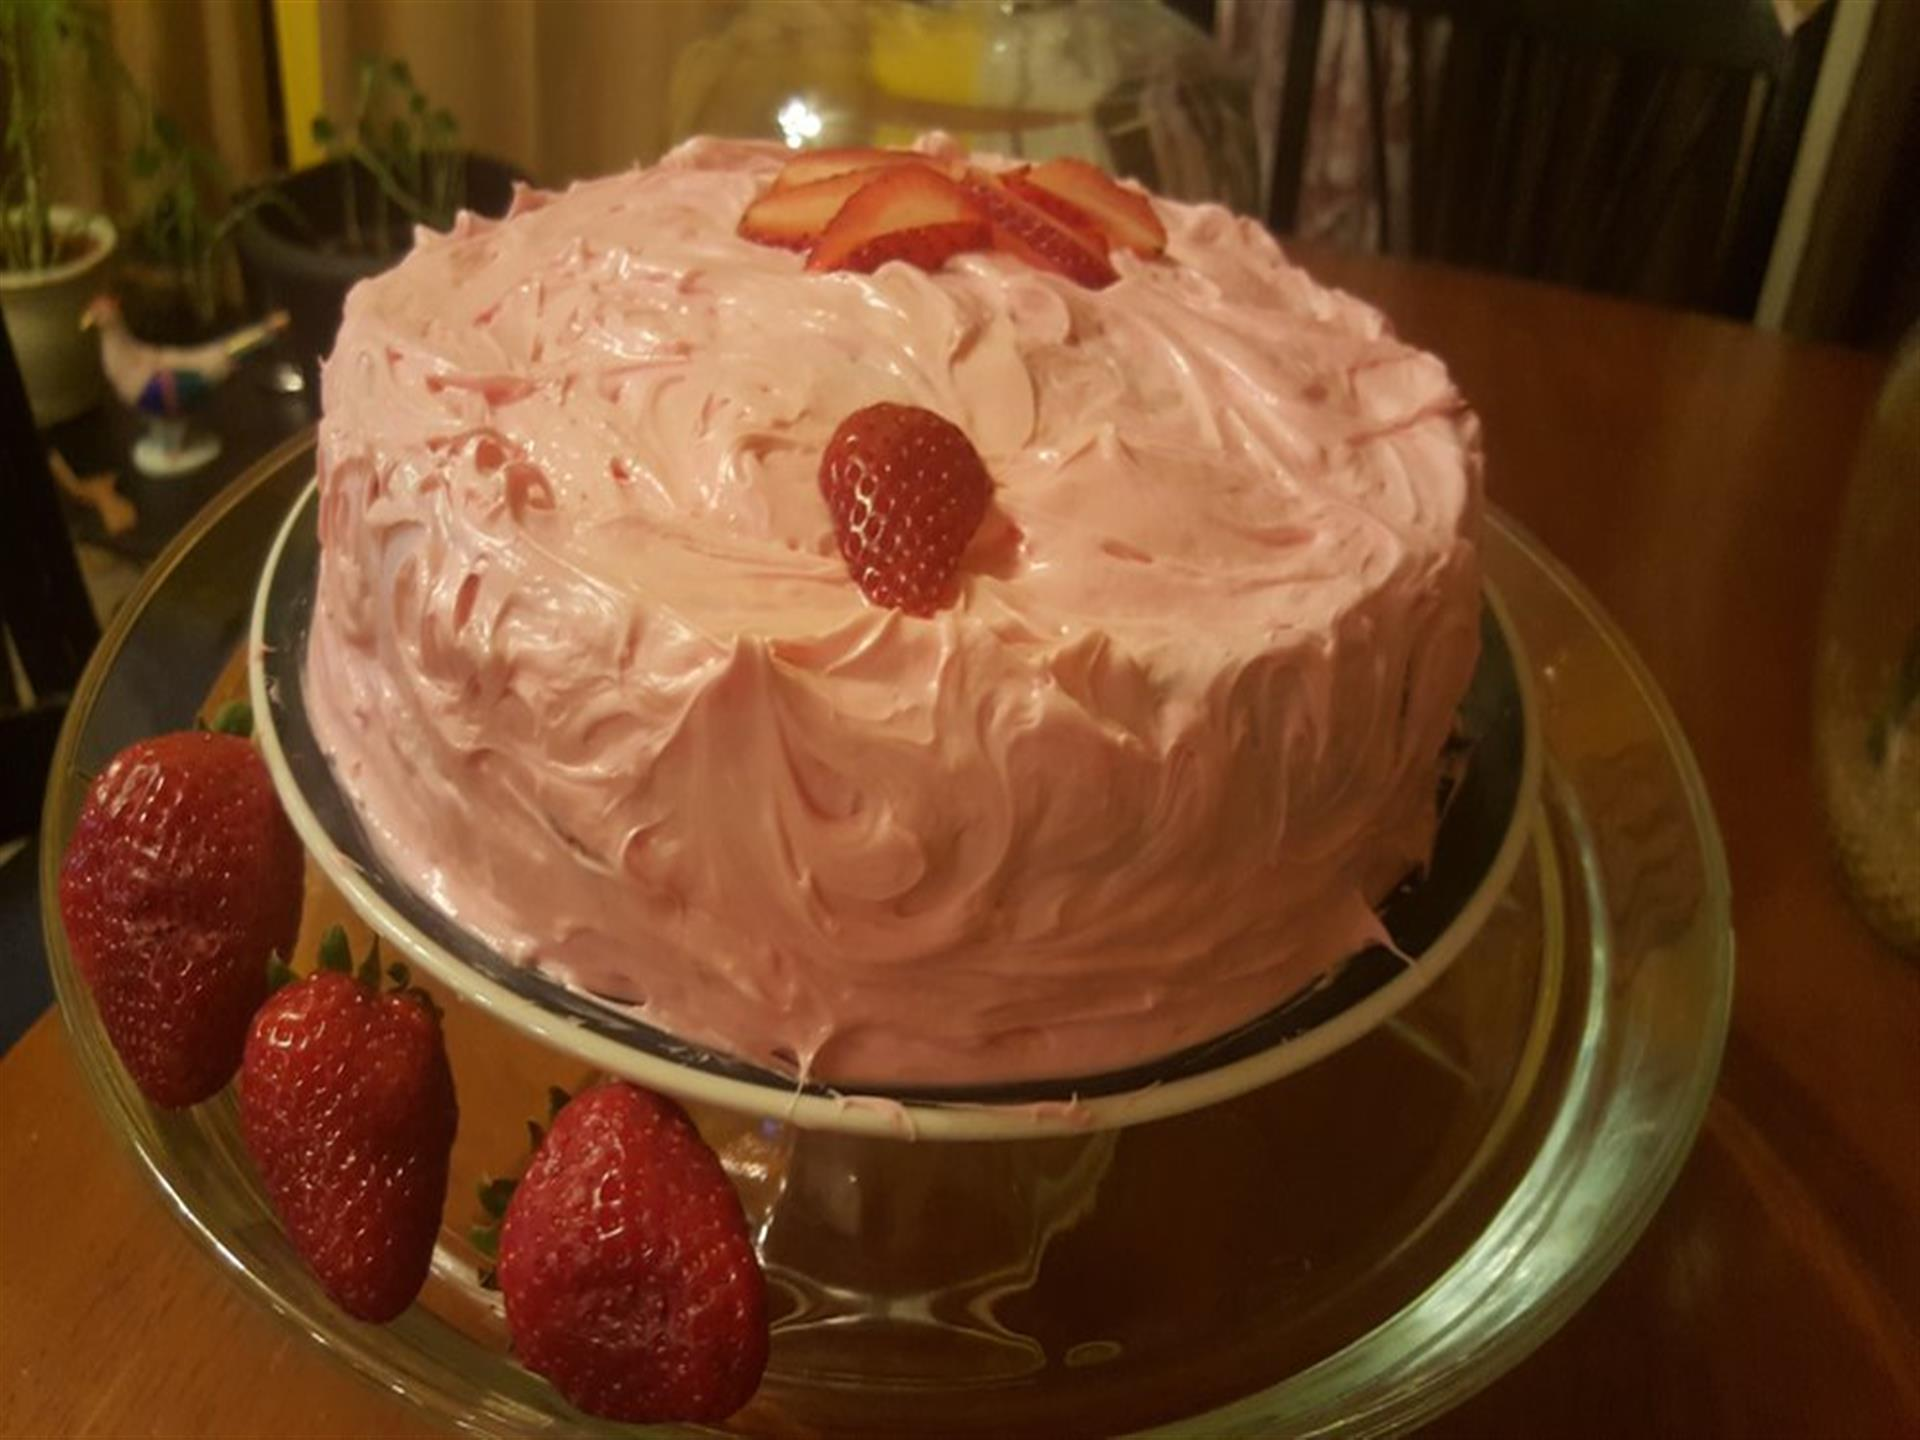 Strawberry frosted cake topped and garnished with strawberries on dish